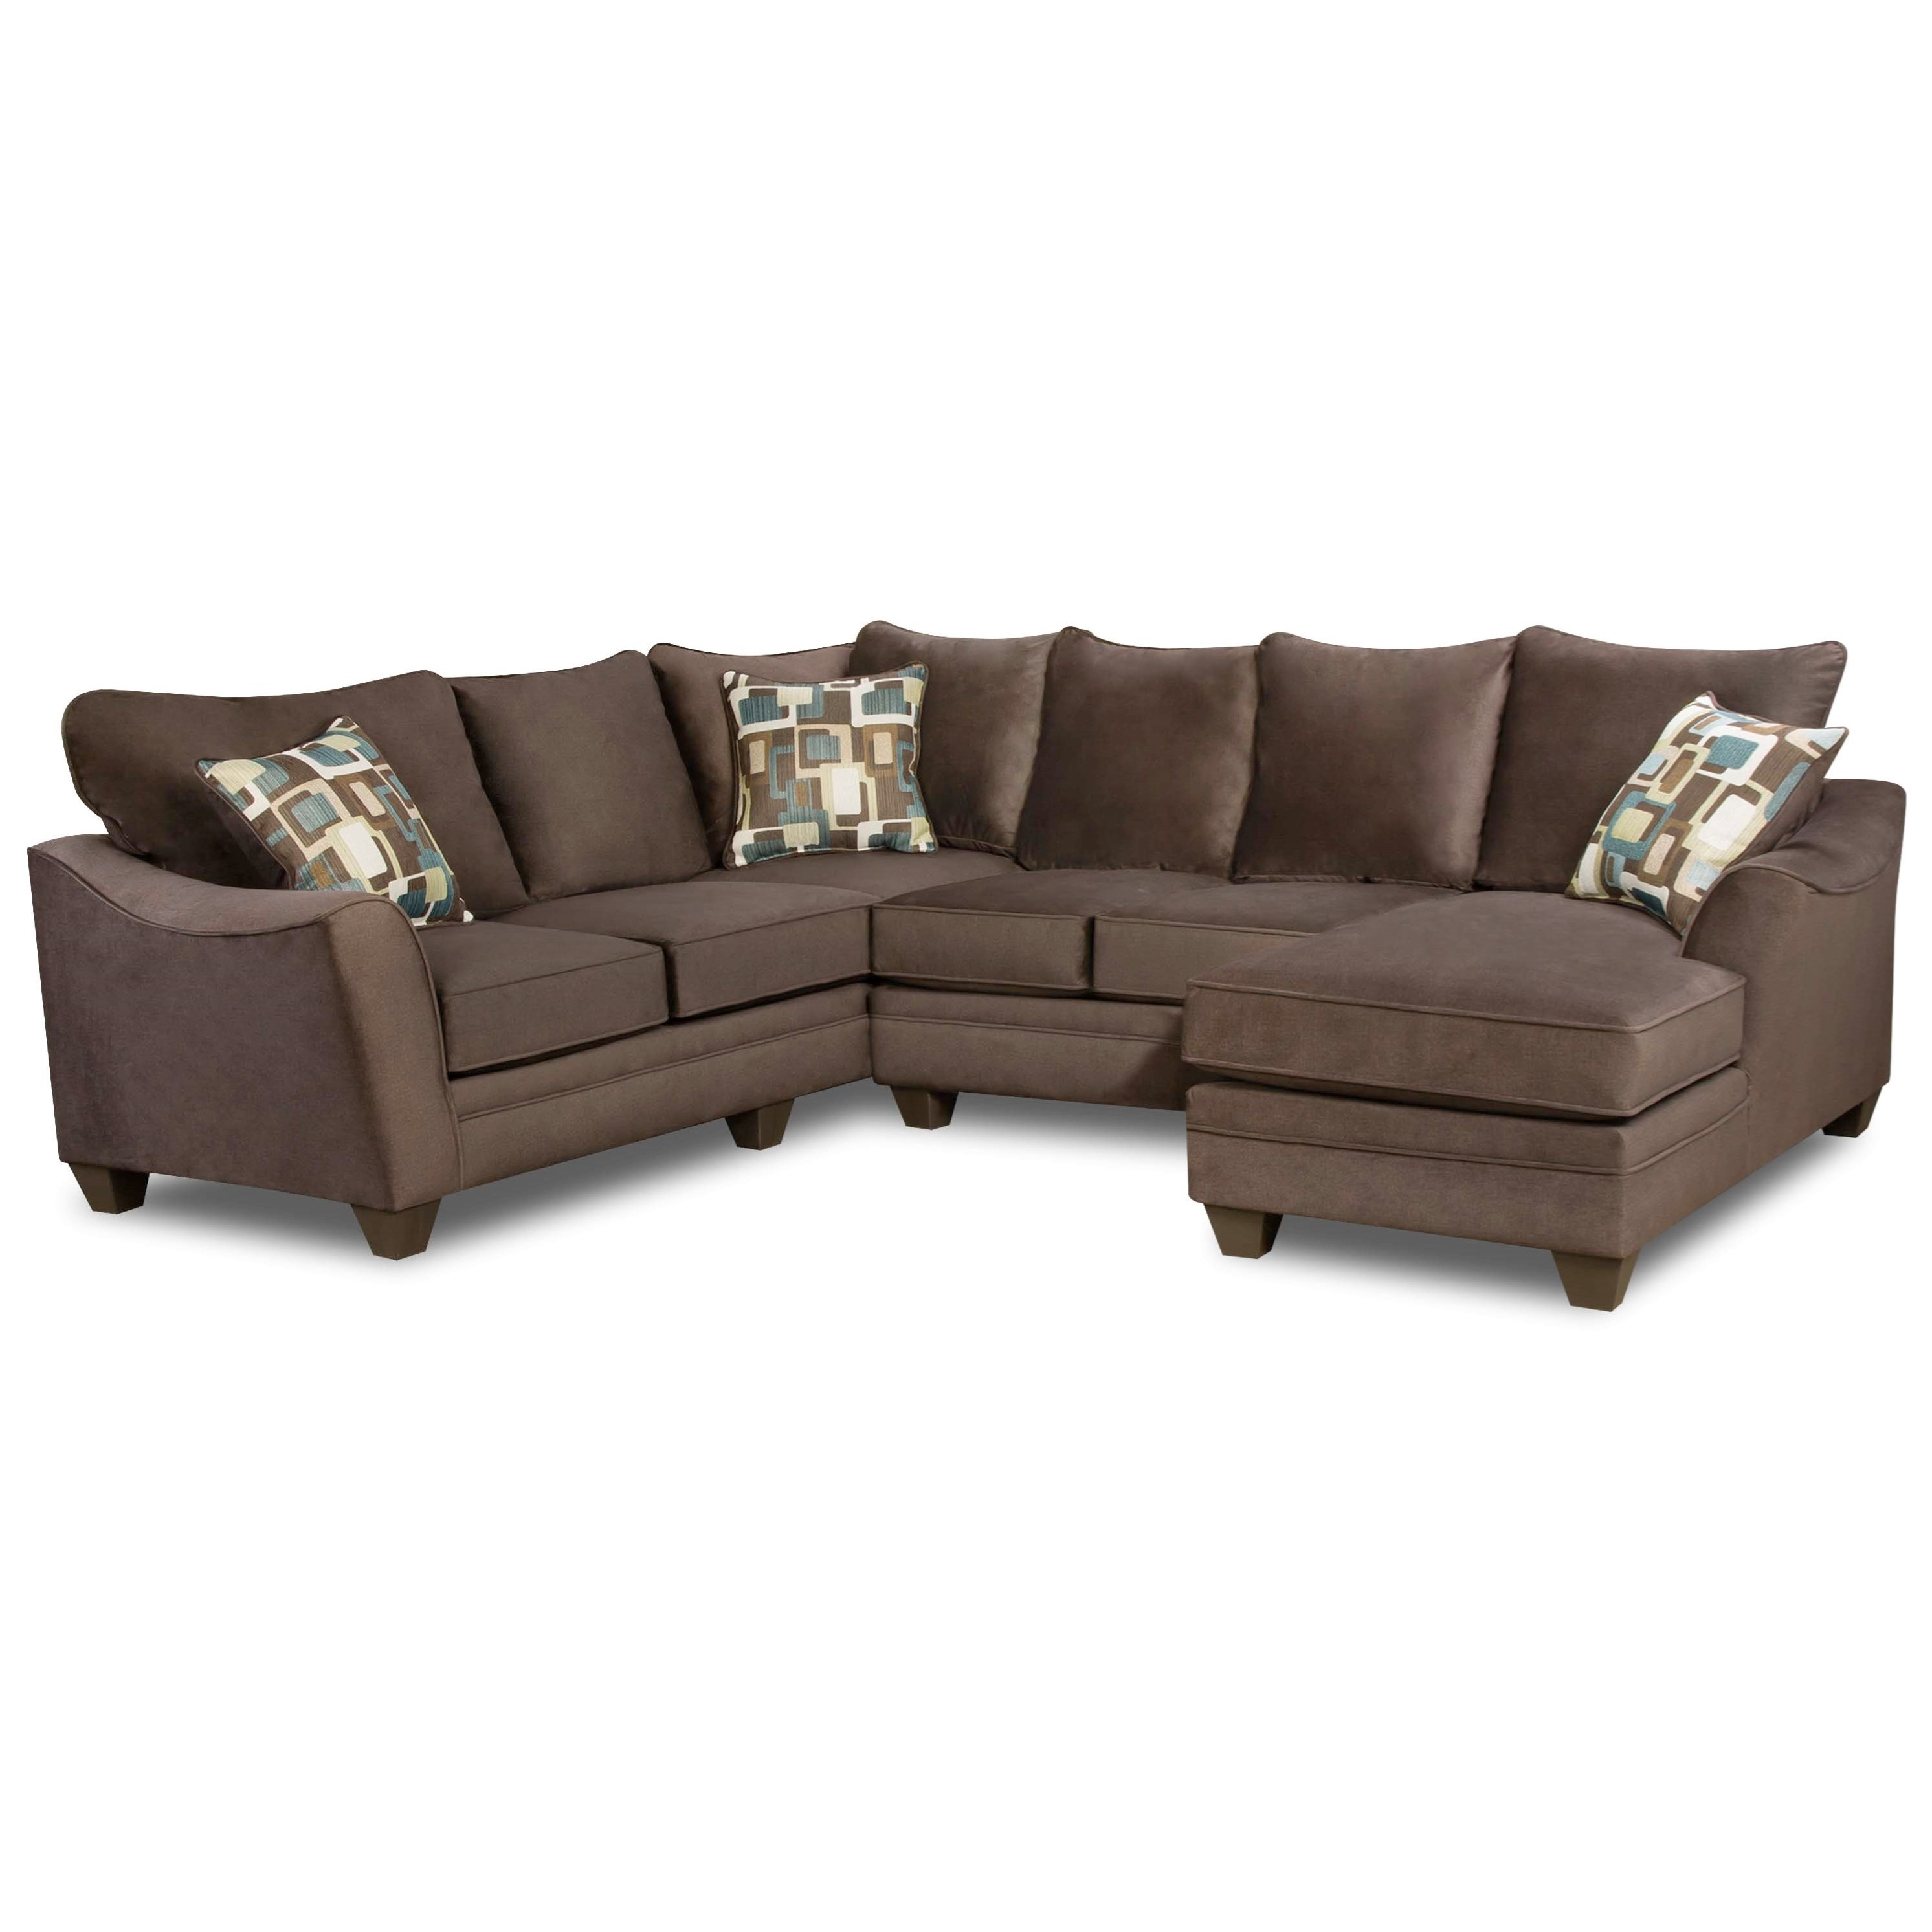 American Sofa Images 3810 Sectional Sofa With 5 Seats By American Furniture At Beck S Furniture